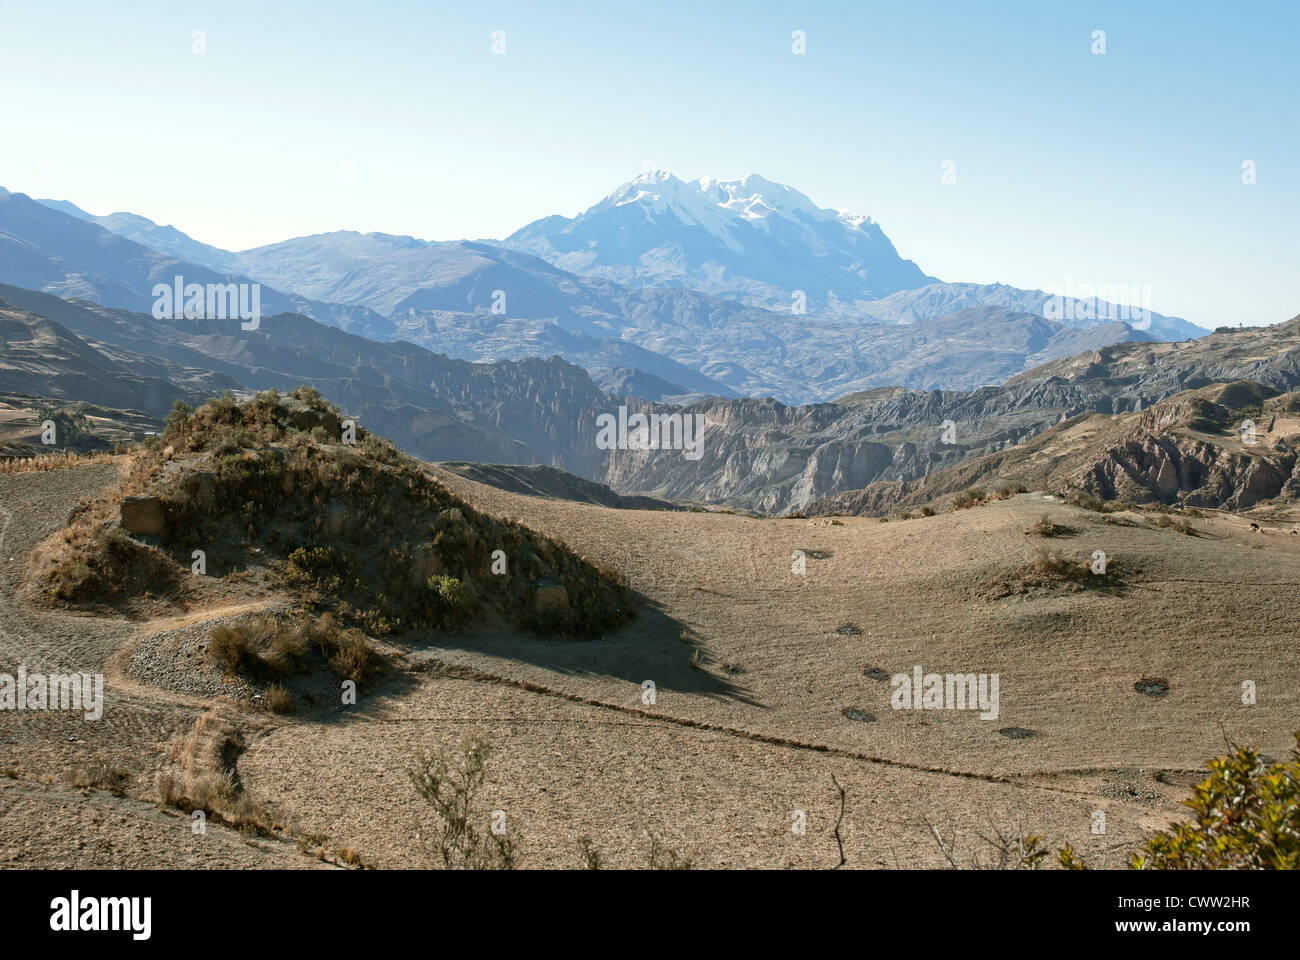 View of the Illimani, Bolivia - Stock Image